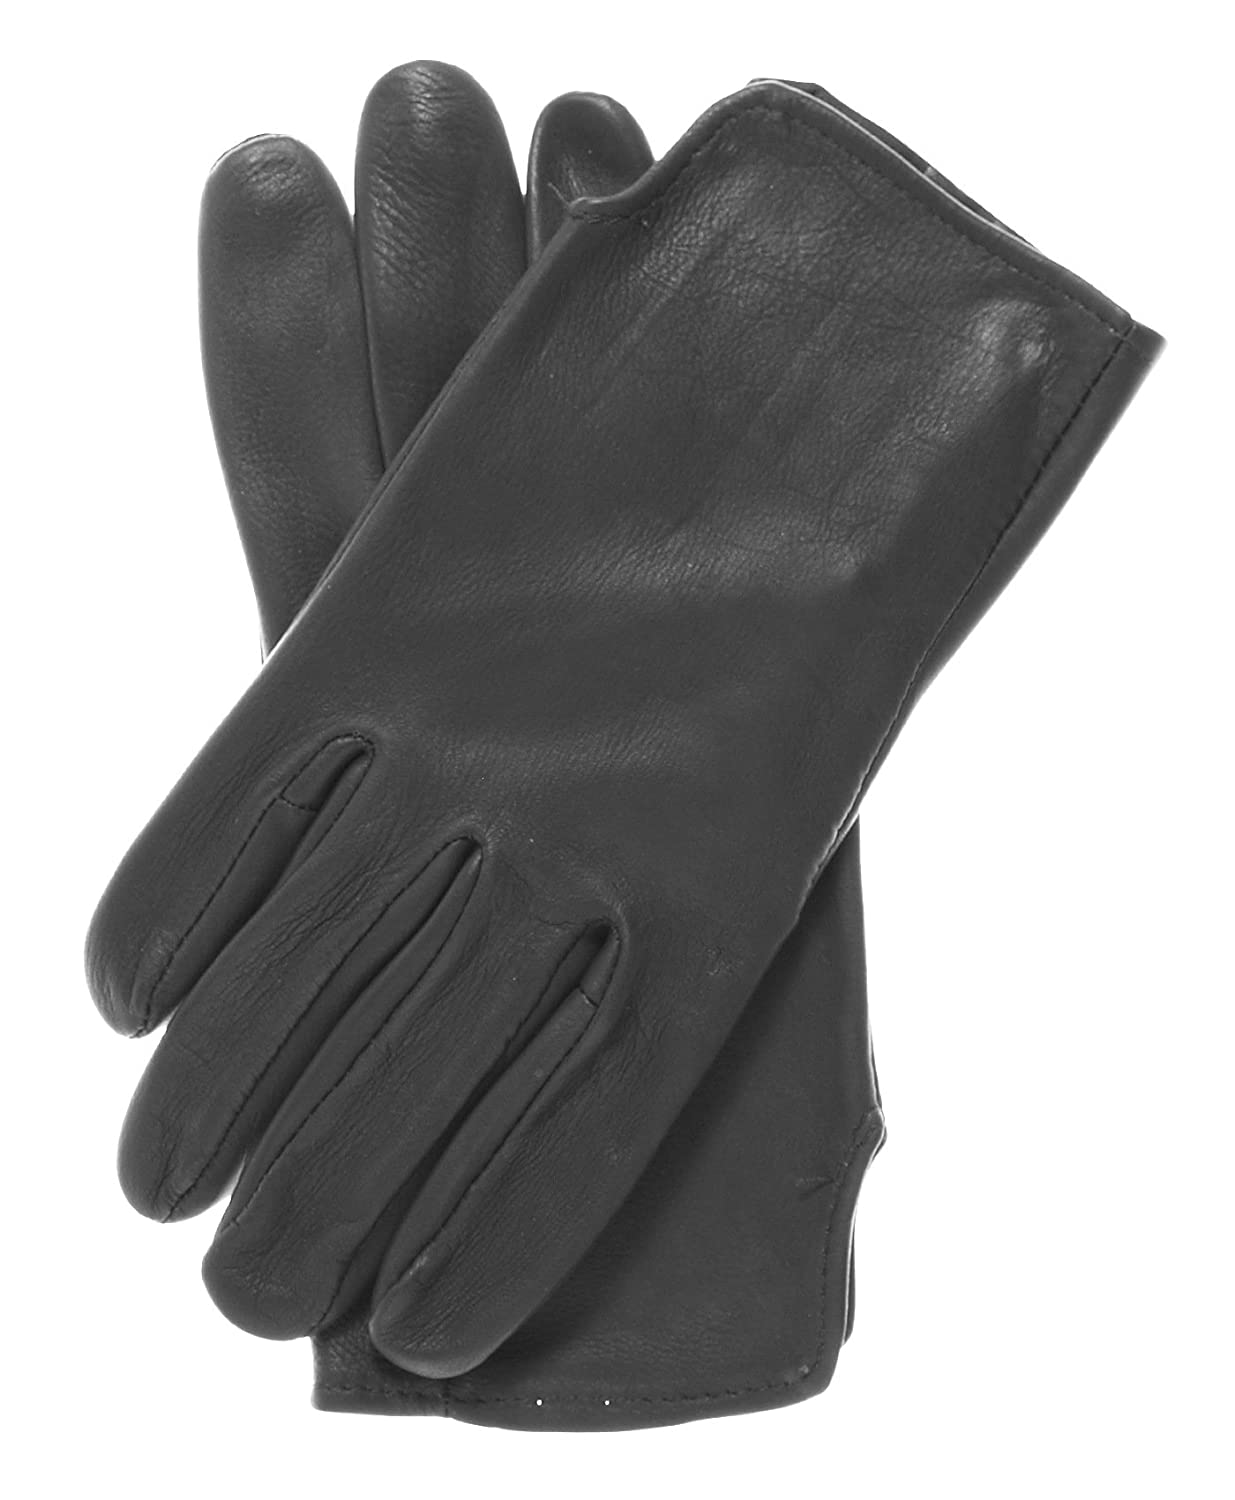 Mens deerskin gloves - Geier Glove Men S Deerskin Gloves Size 6 1 2 Color Black At Amazon Men S Clothing Store Cold Weather Gloves